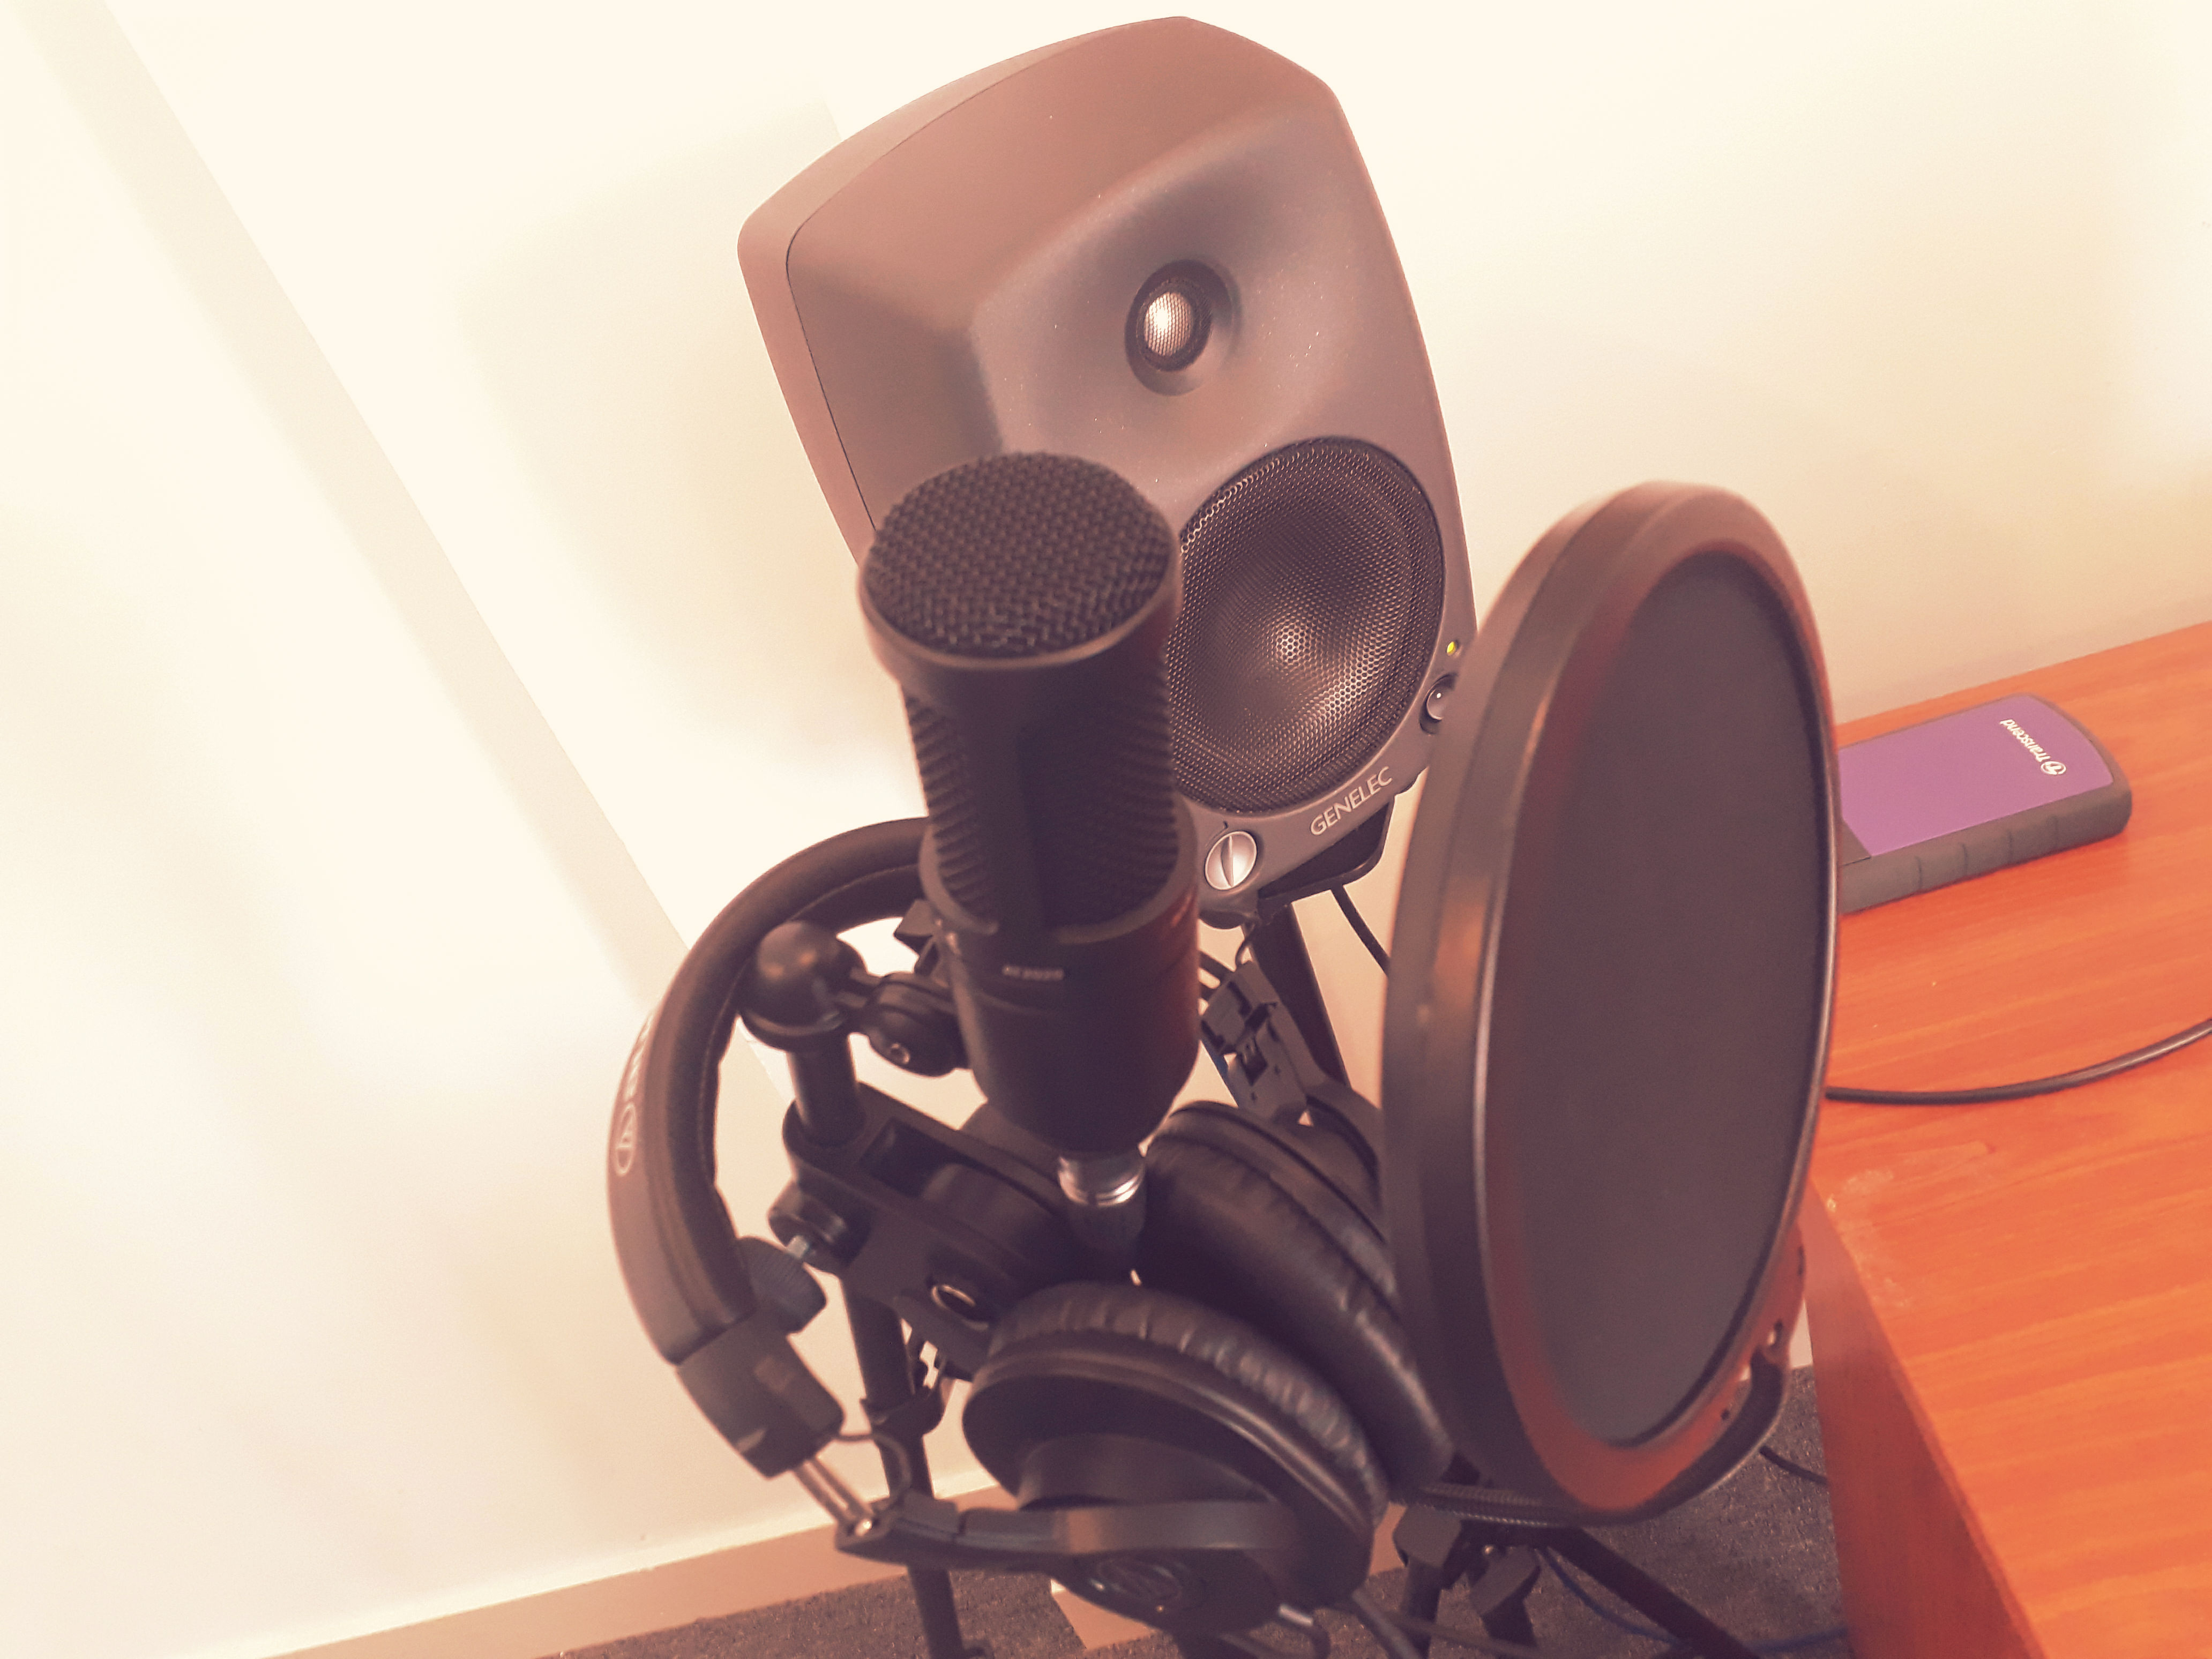 Provide 50 Words of Female Voiceover - Recommended For Cartoons, Games, Kids / Children's Projects